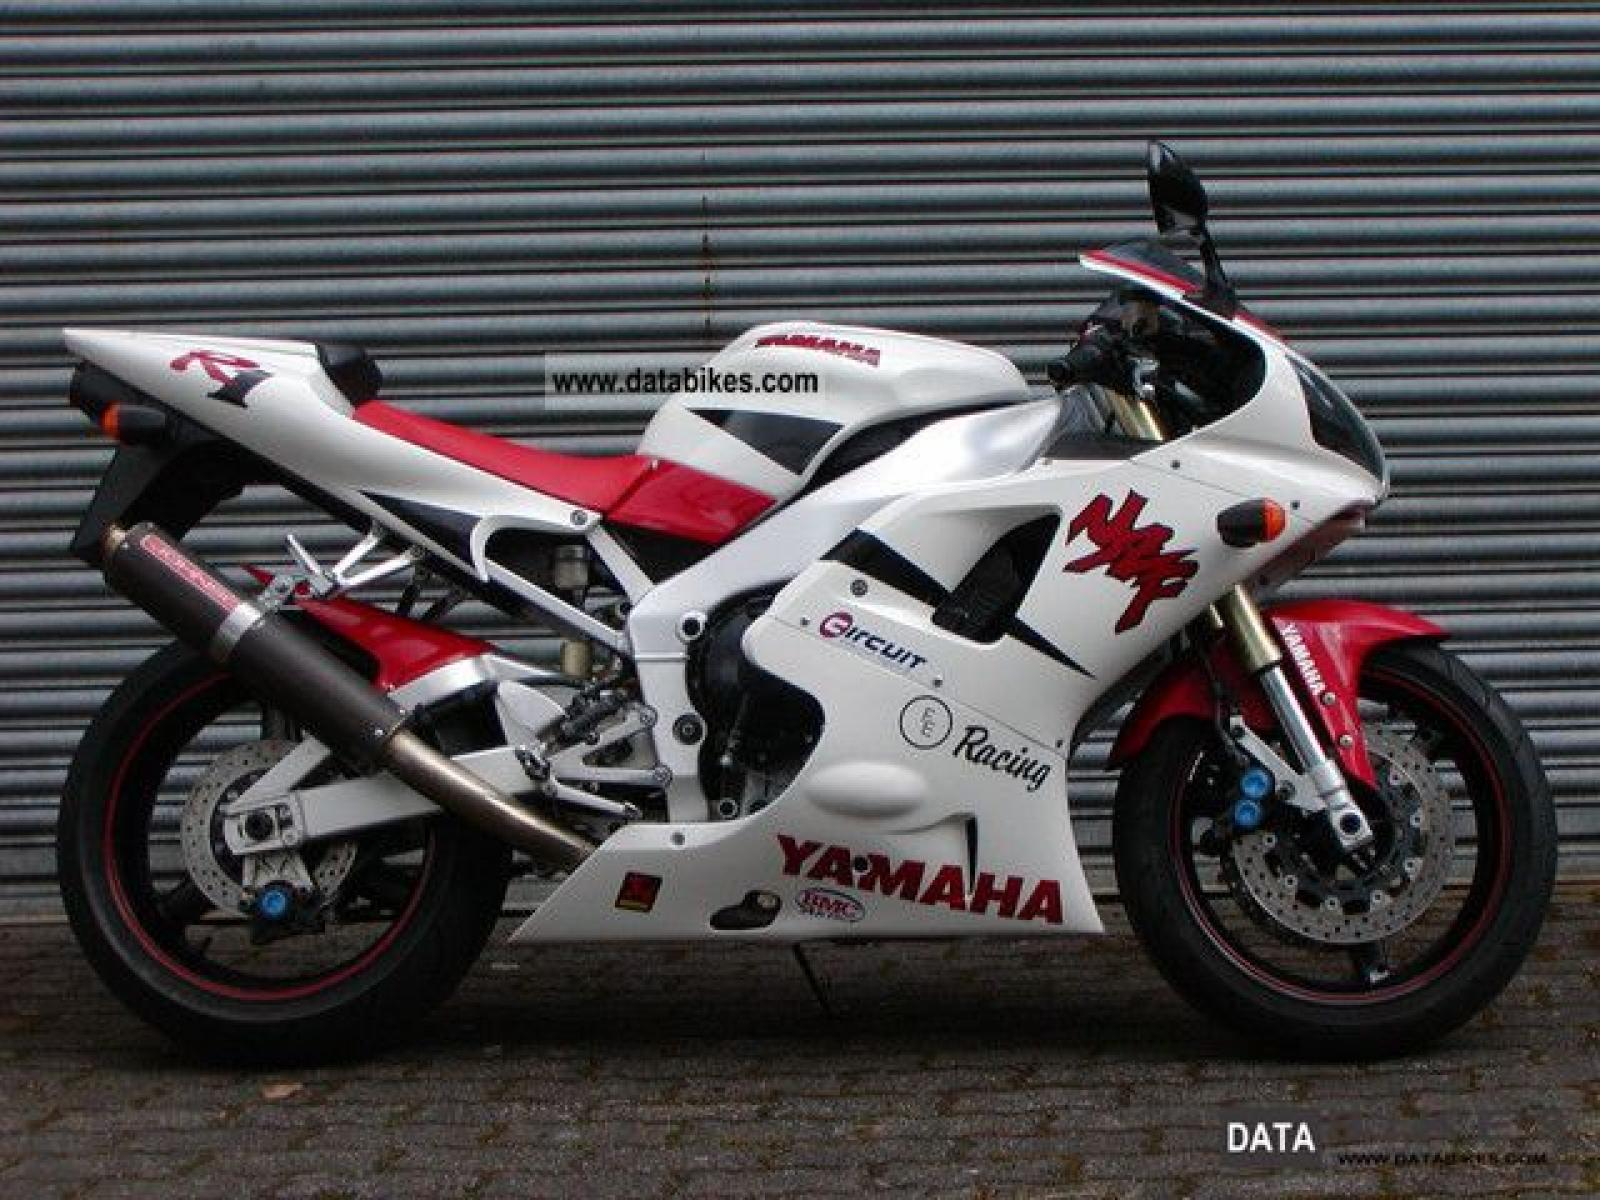 Scarico Ducati Panigale furthermore Yamaha Yzf R besides  in addition C additionally . on 2015 yamaha r1